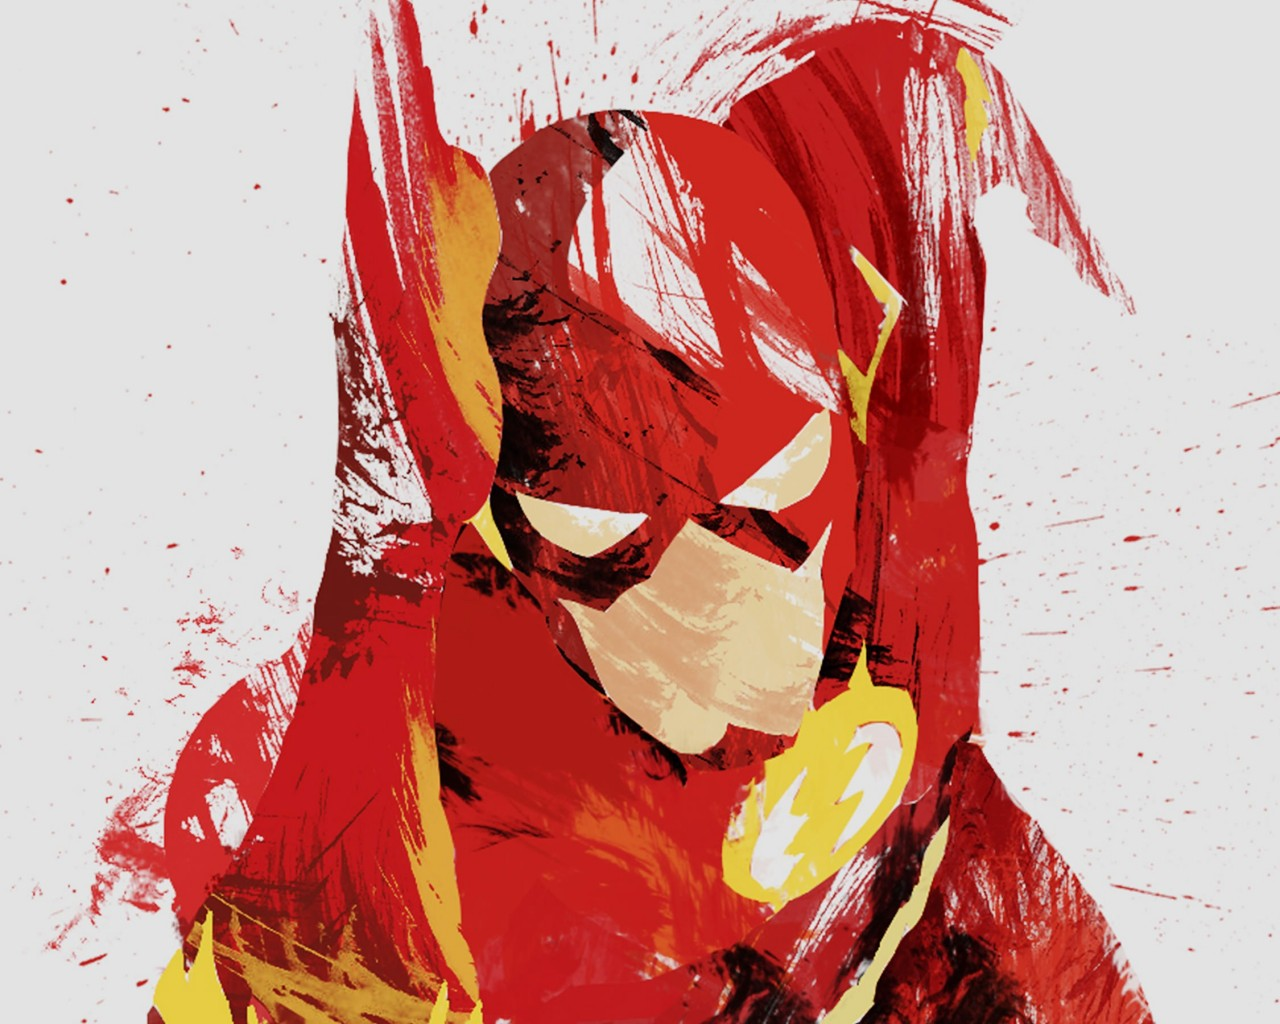 The Flash Illustration Wallpaper for Desktop 1280x1024